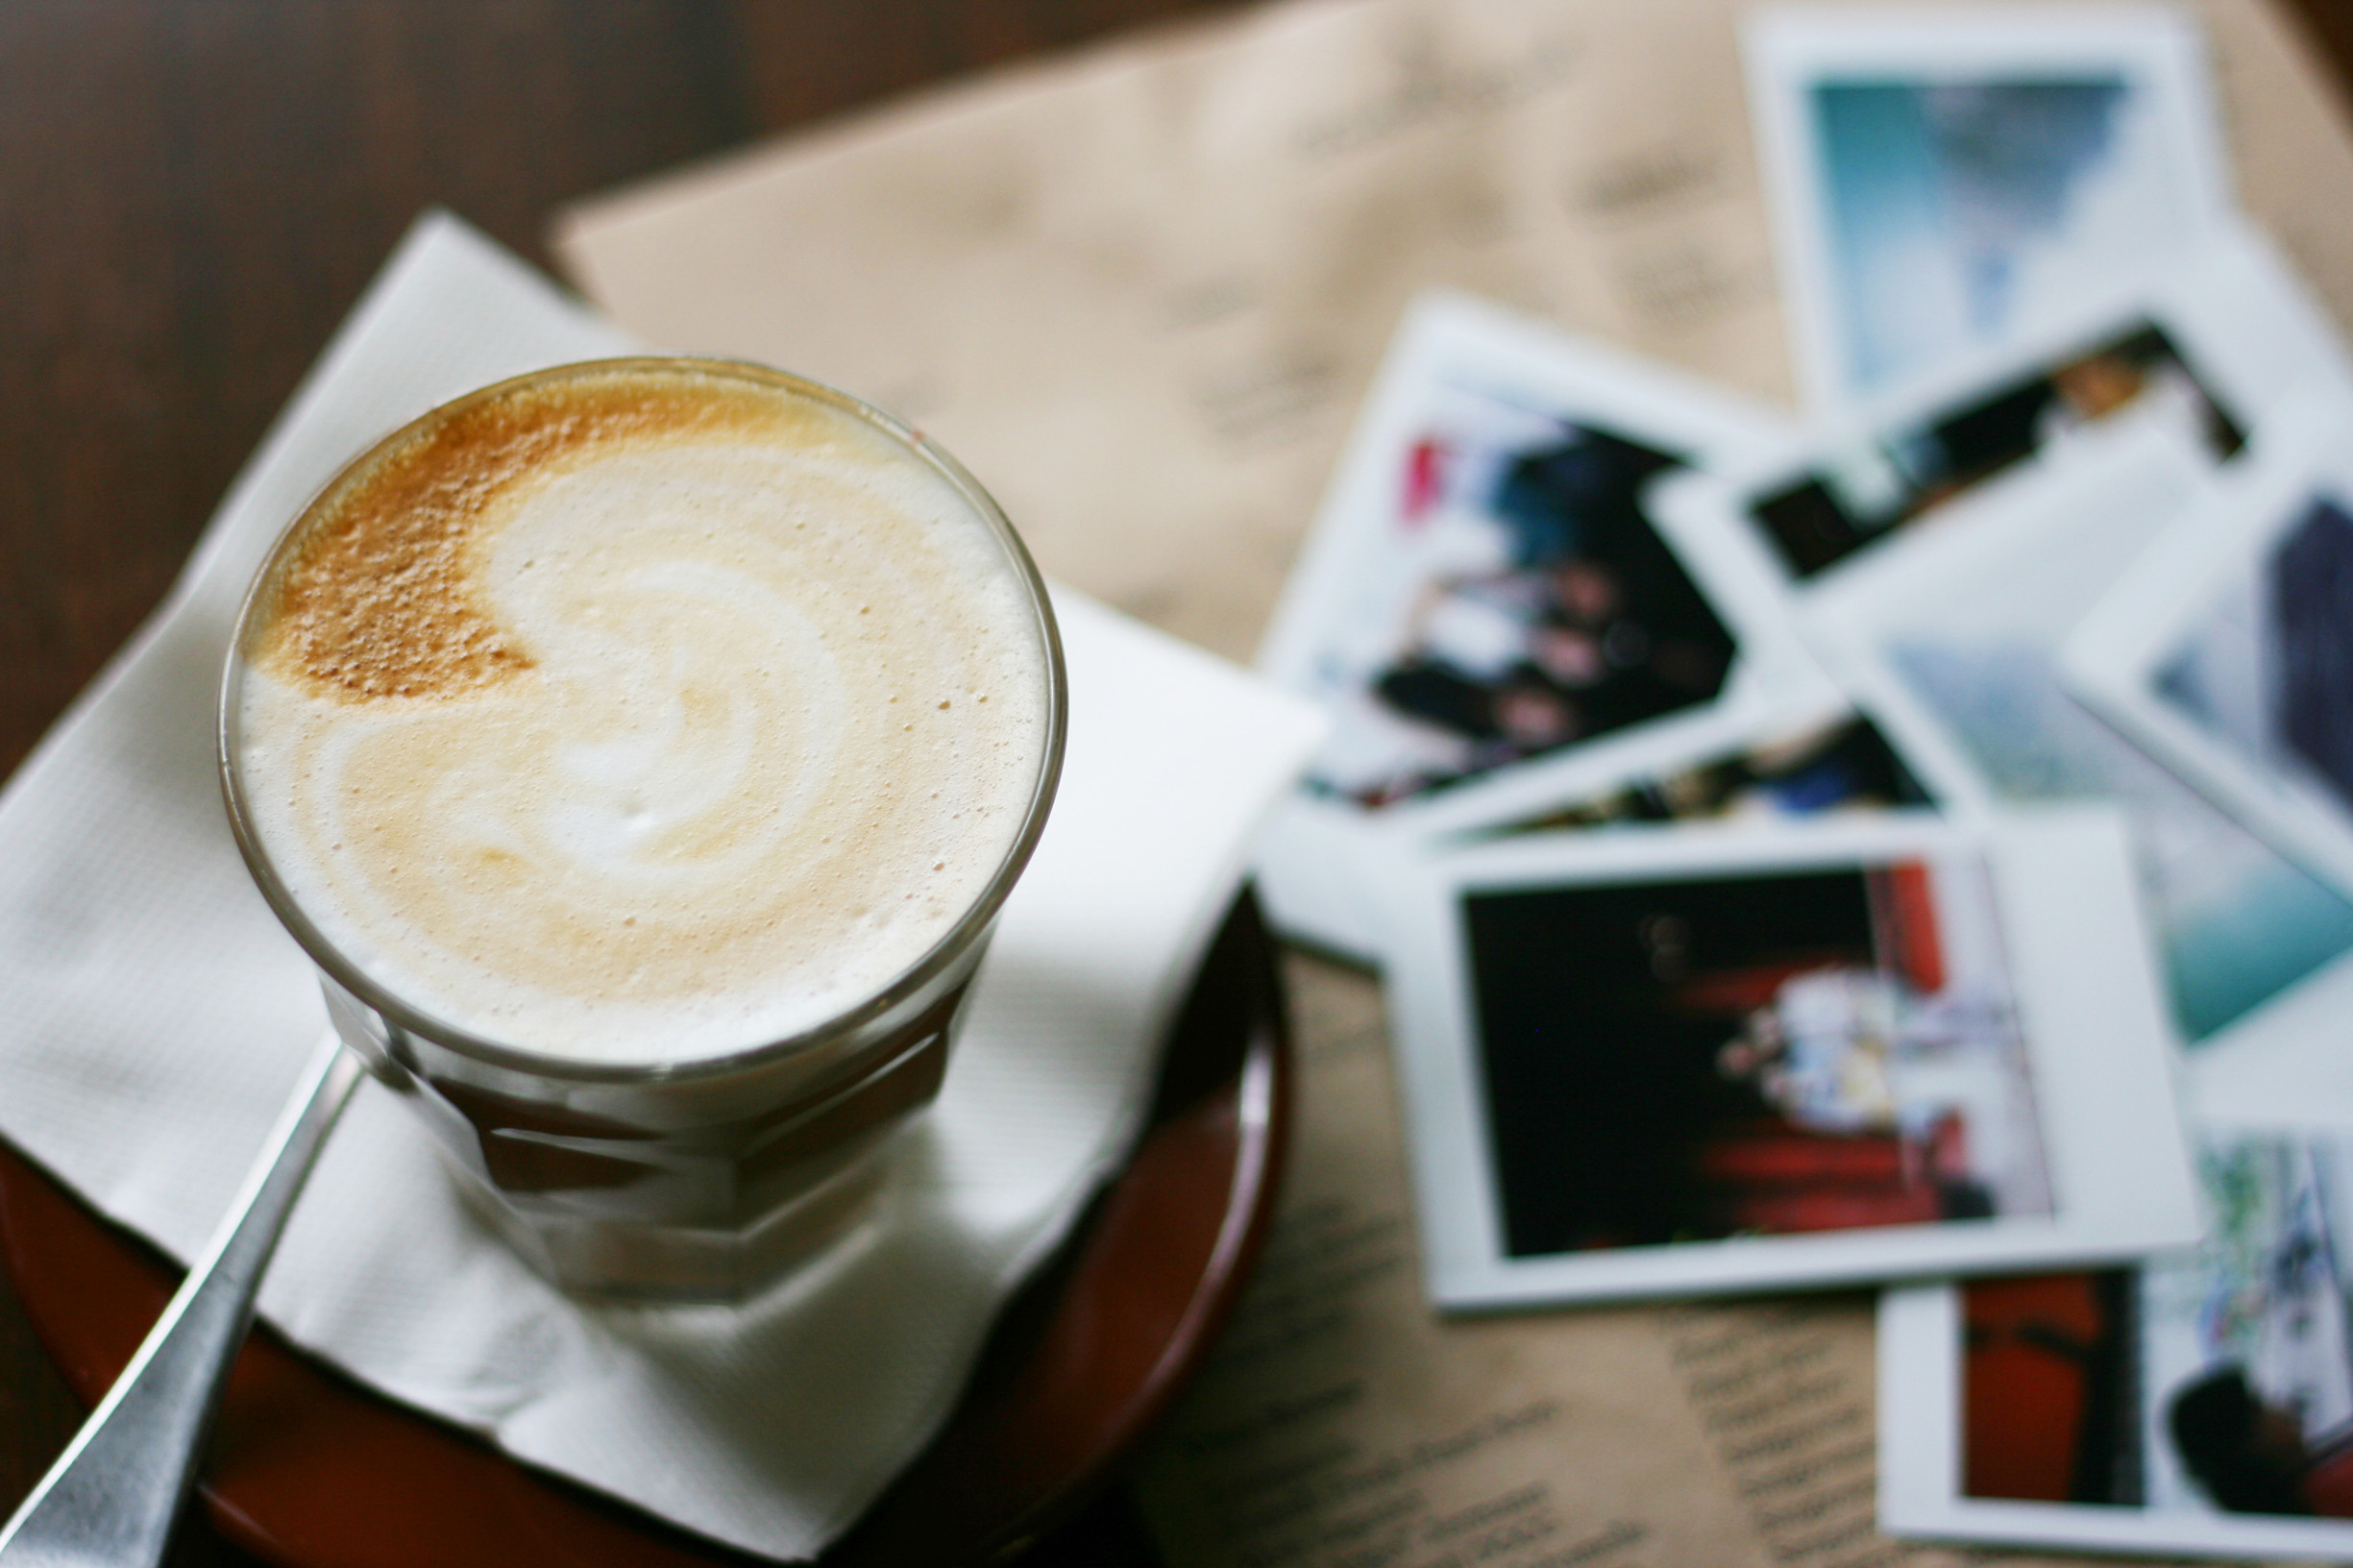 photo journal photos with coffee